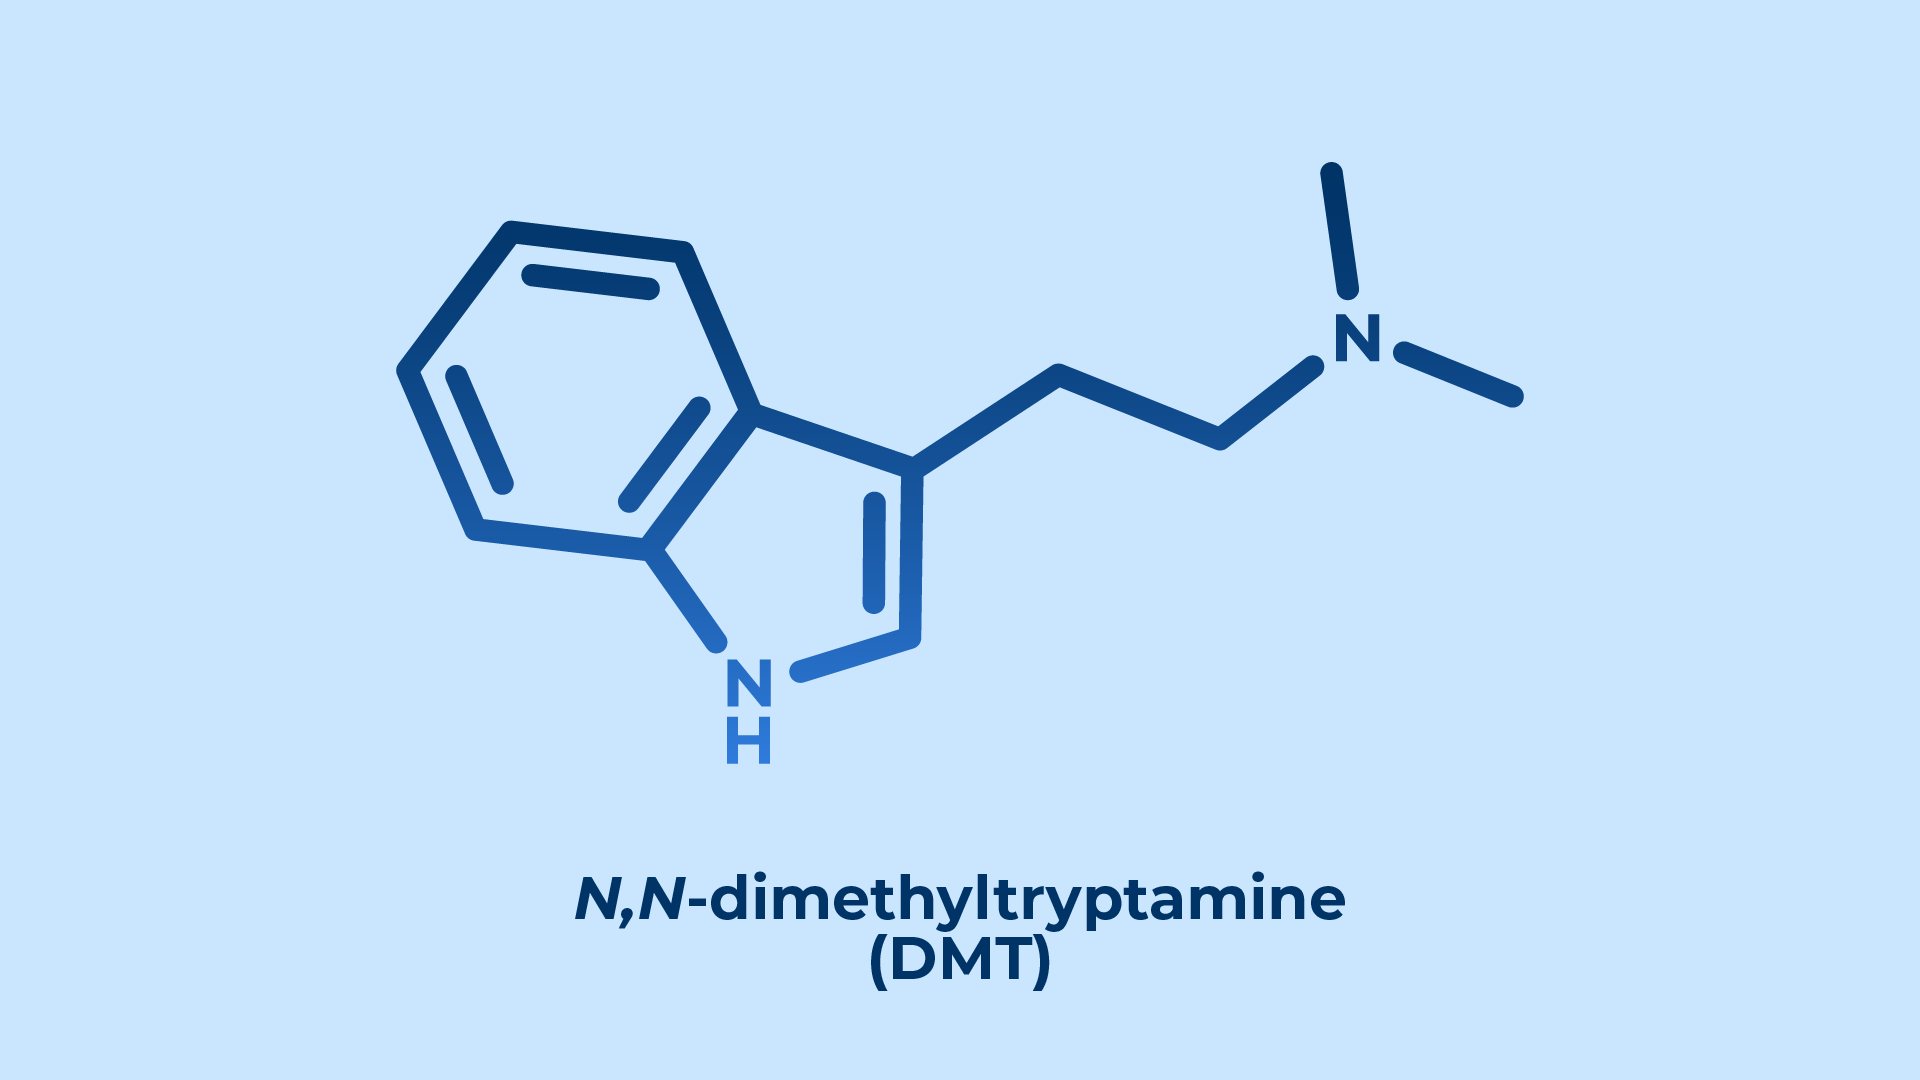 Chemical structure of DMT (N,N-Dimethyltryptamine) molecule. DMT is a psychedelic drug